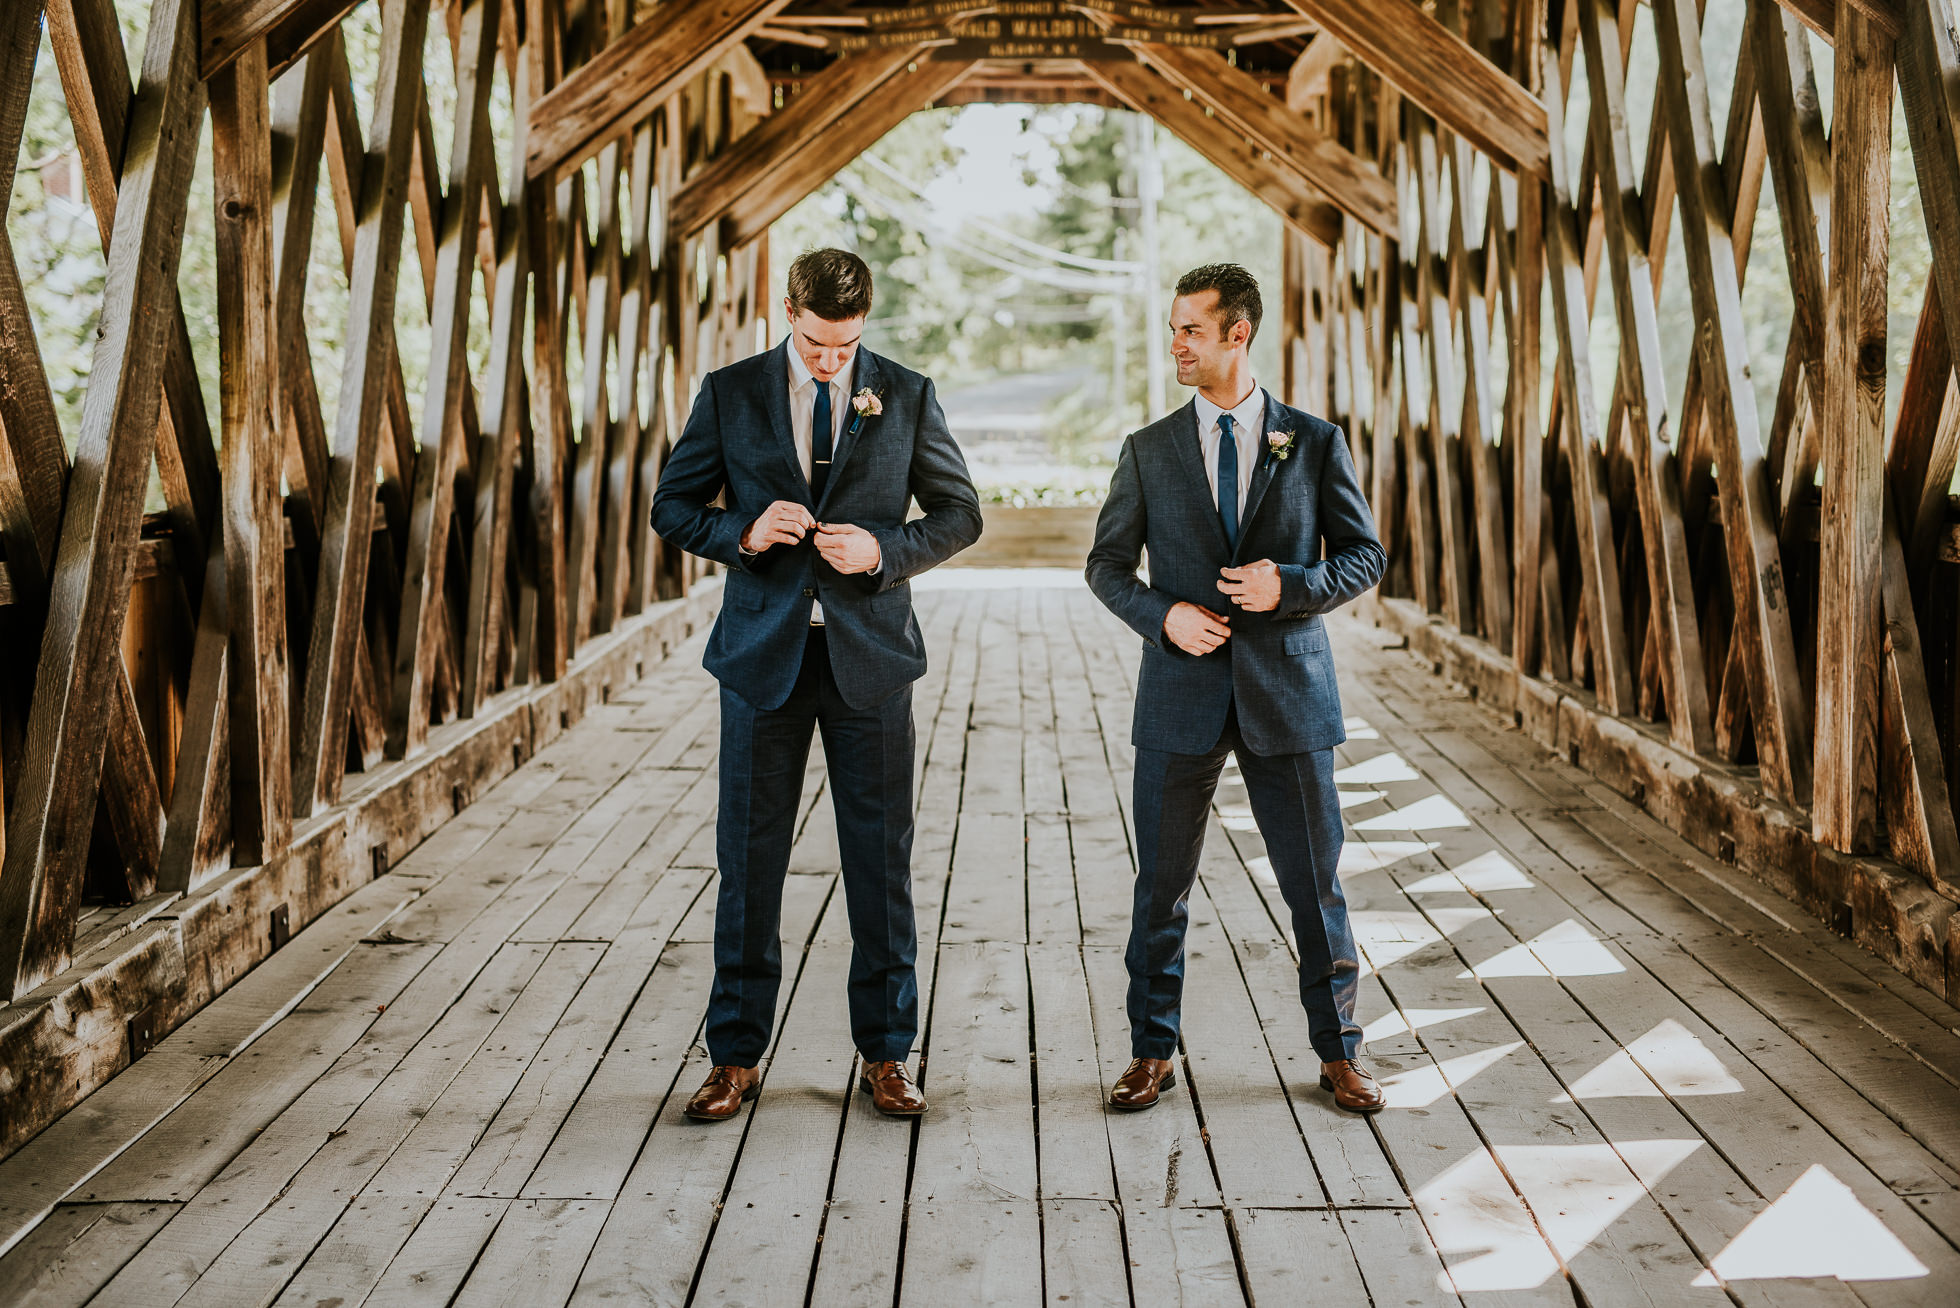 groom and best man on bridge at olde tater barn wedding in central bridge, ny photographed by traverse the tides